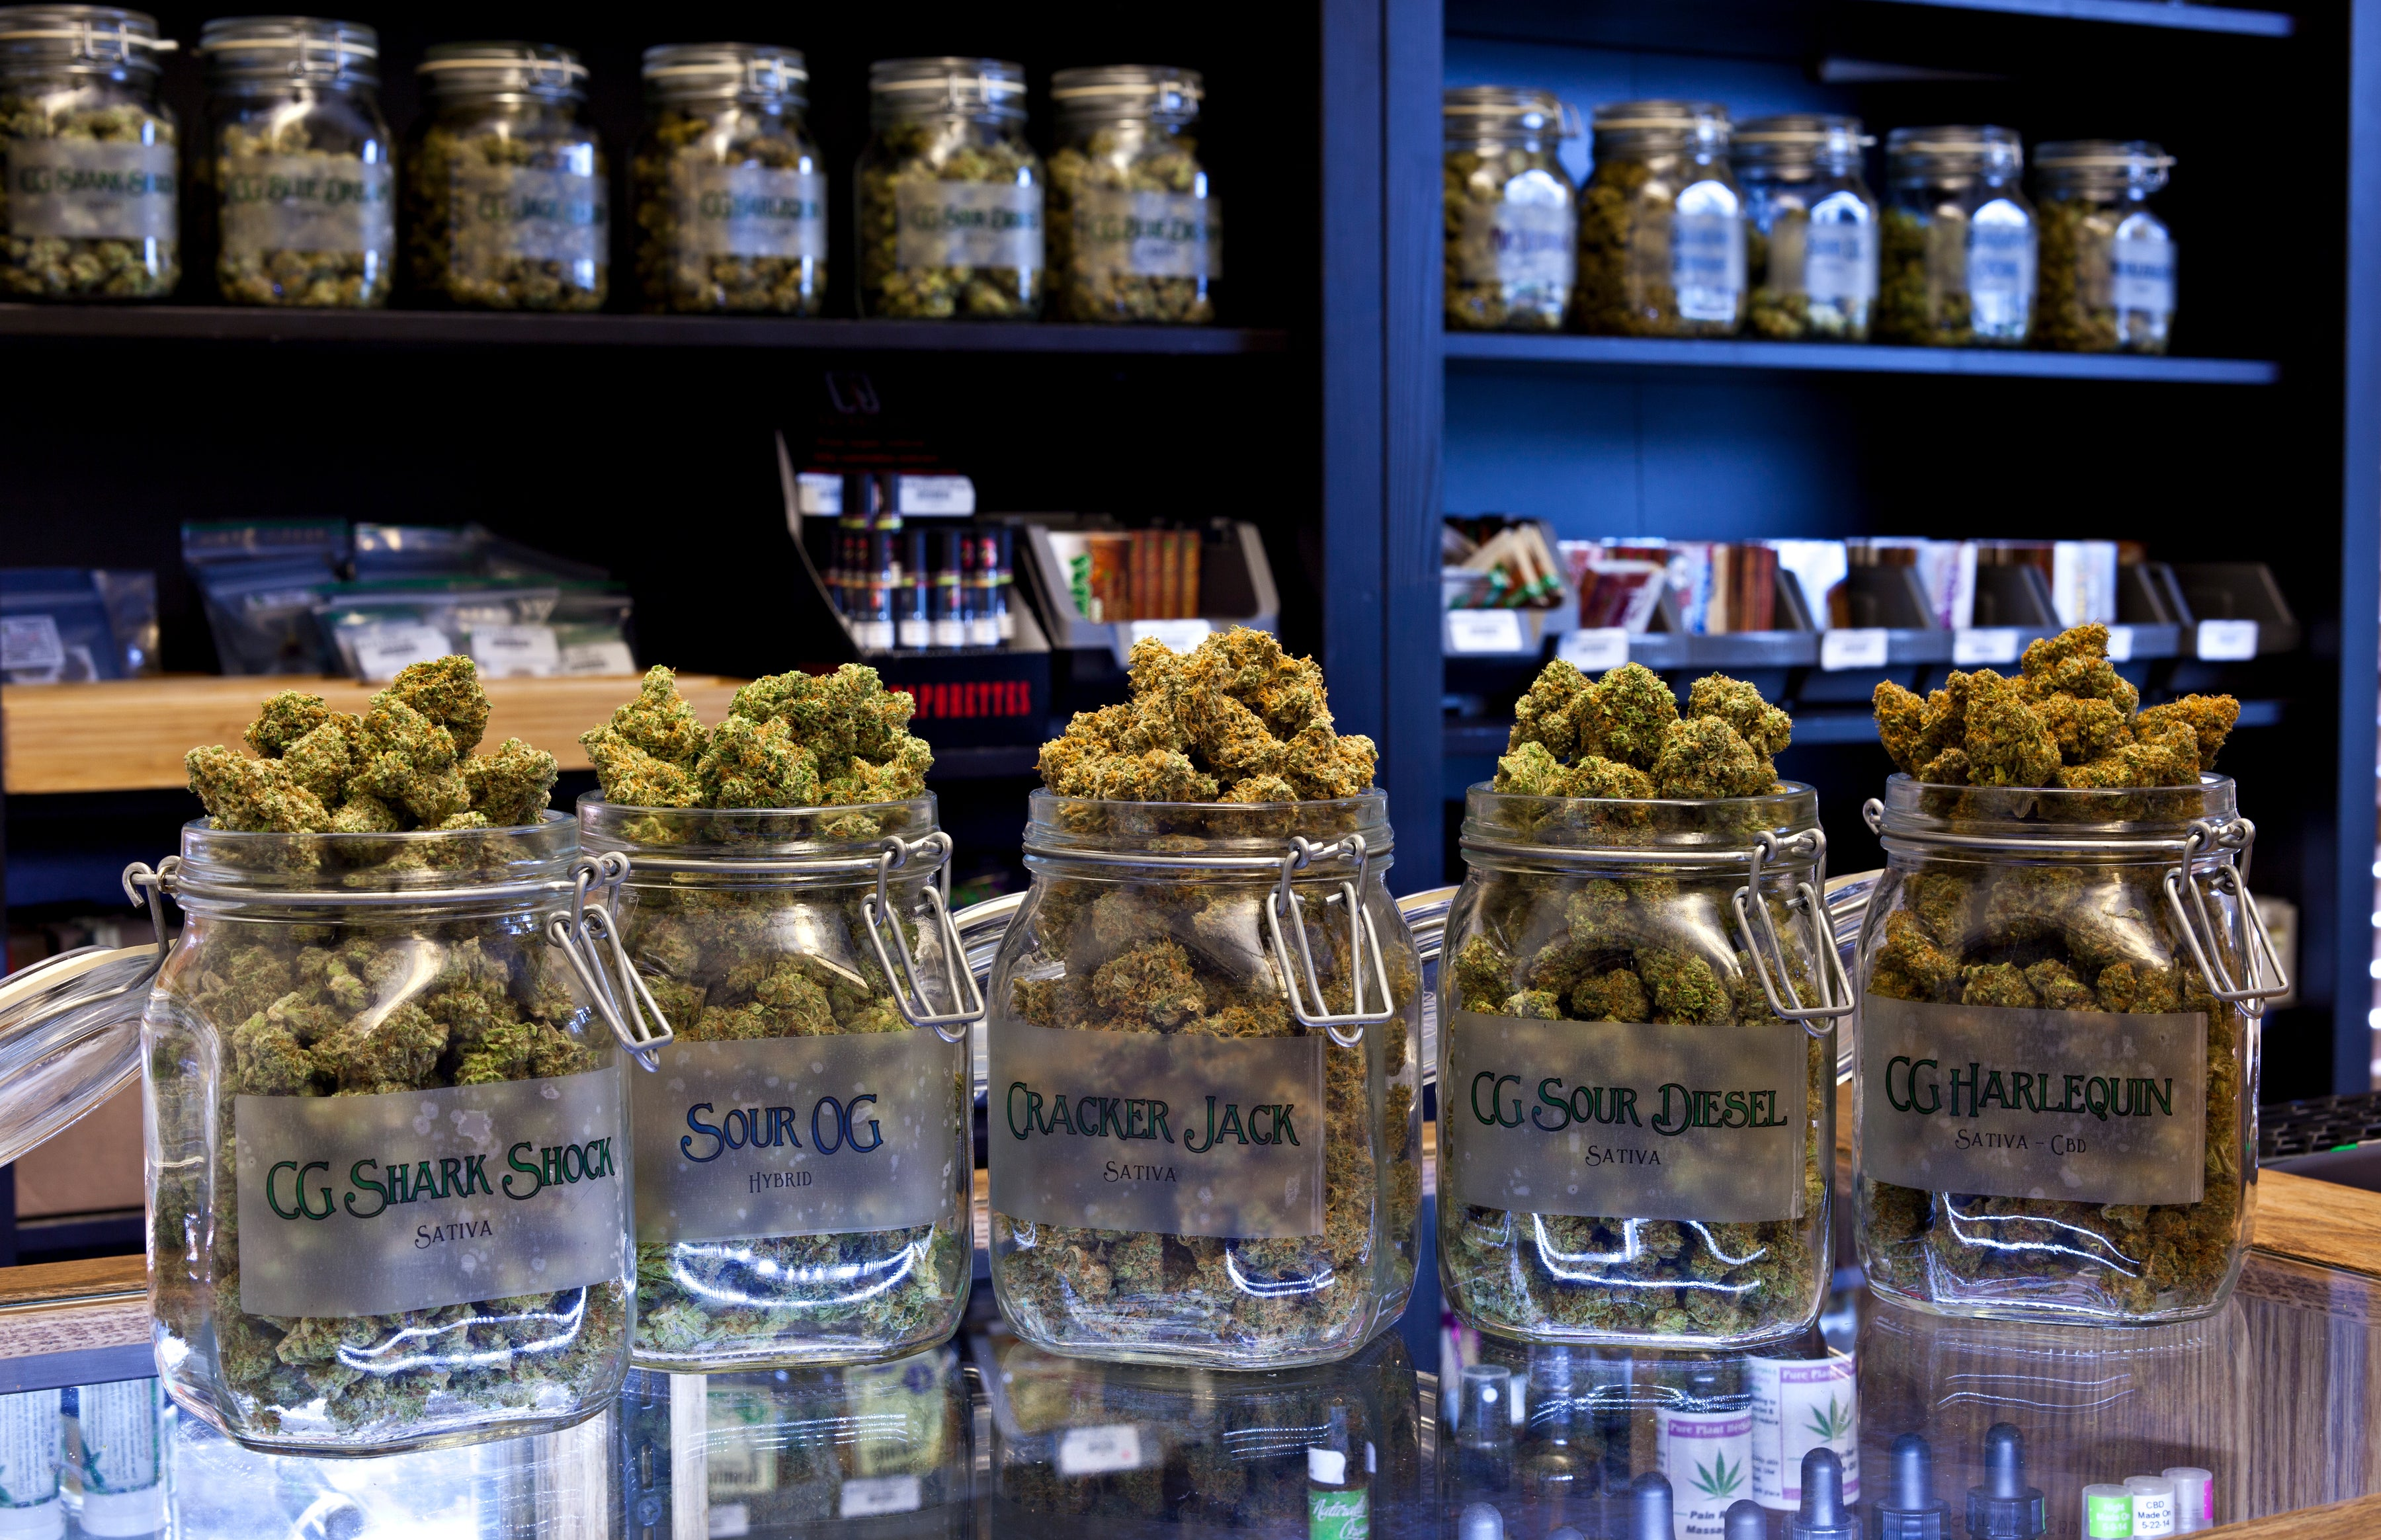 This Pot Stock May Surpass Curaleaf to Become the Largest U.S. Dispensary Operator | The Motley Fool